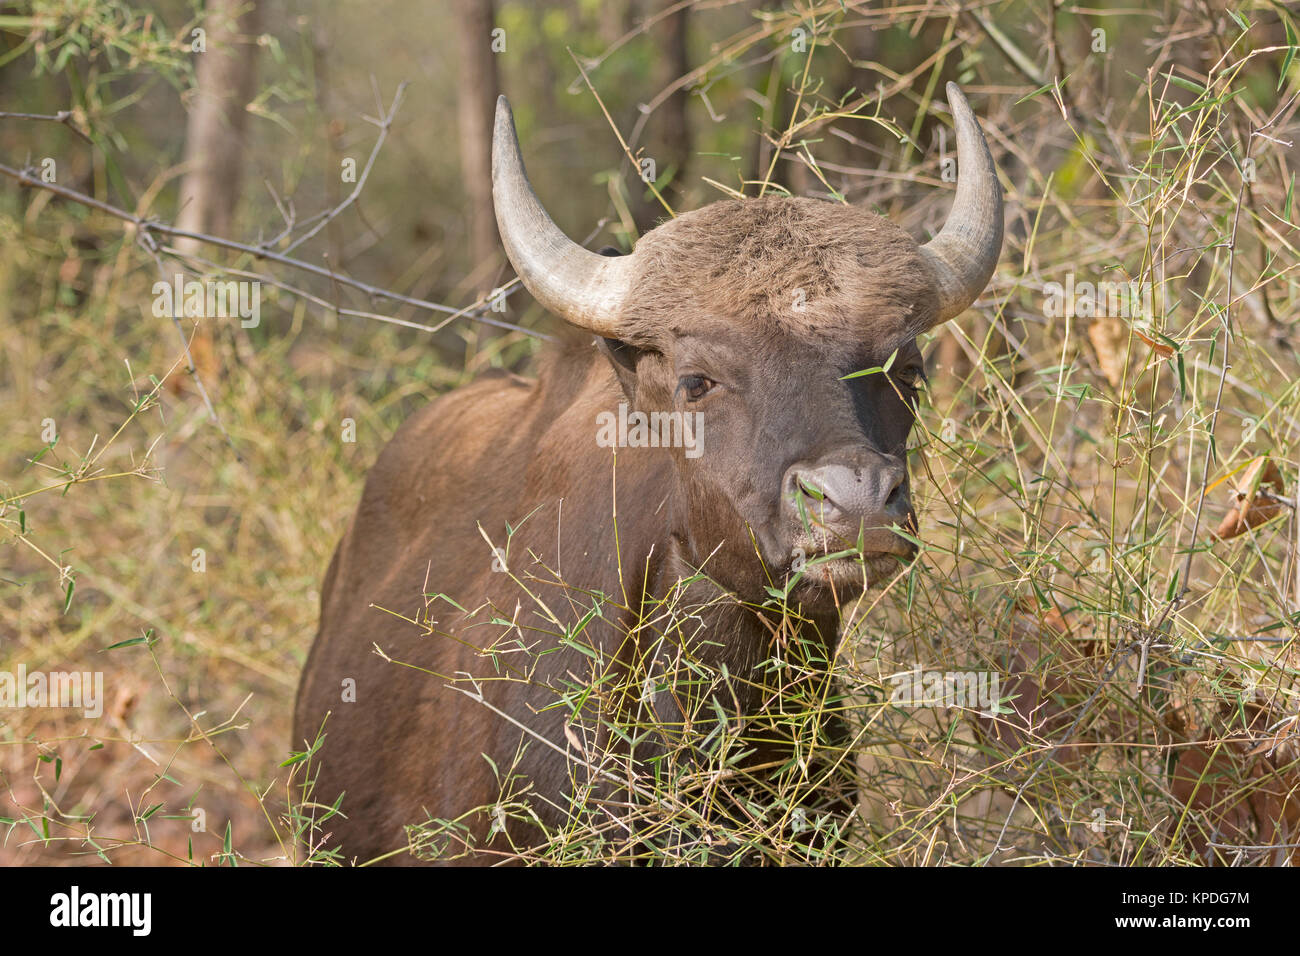 Gaur in the Forest of Bandhavgarh National Park in India - Stock Image